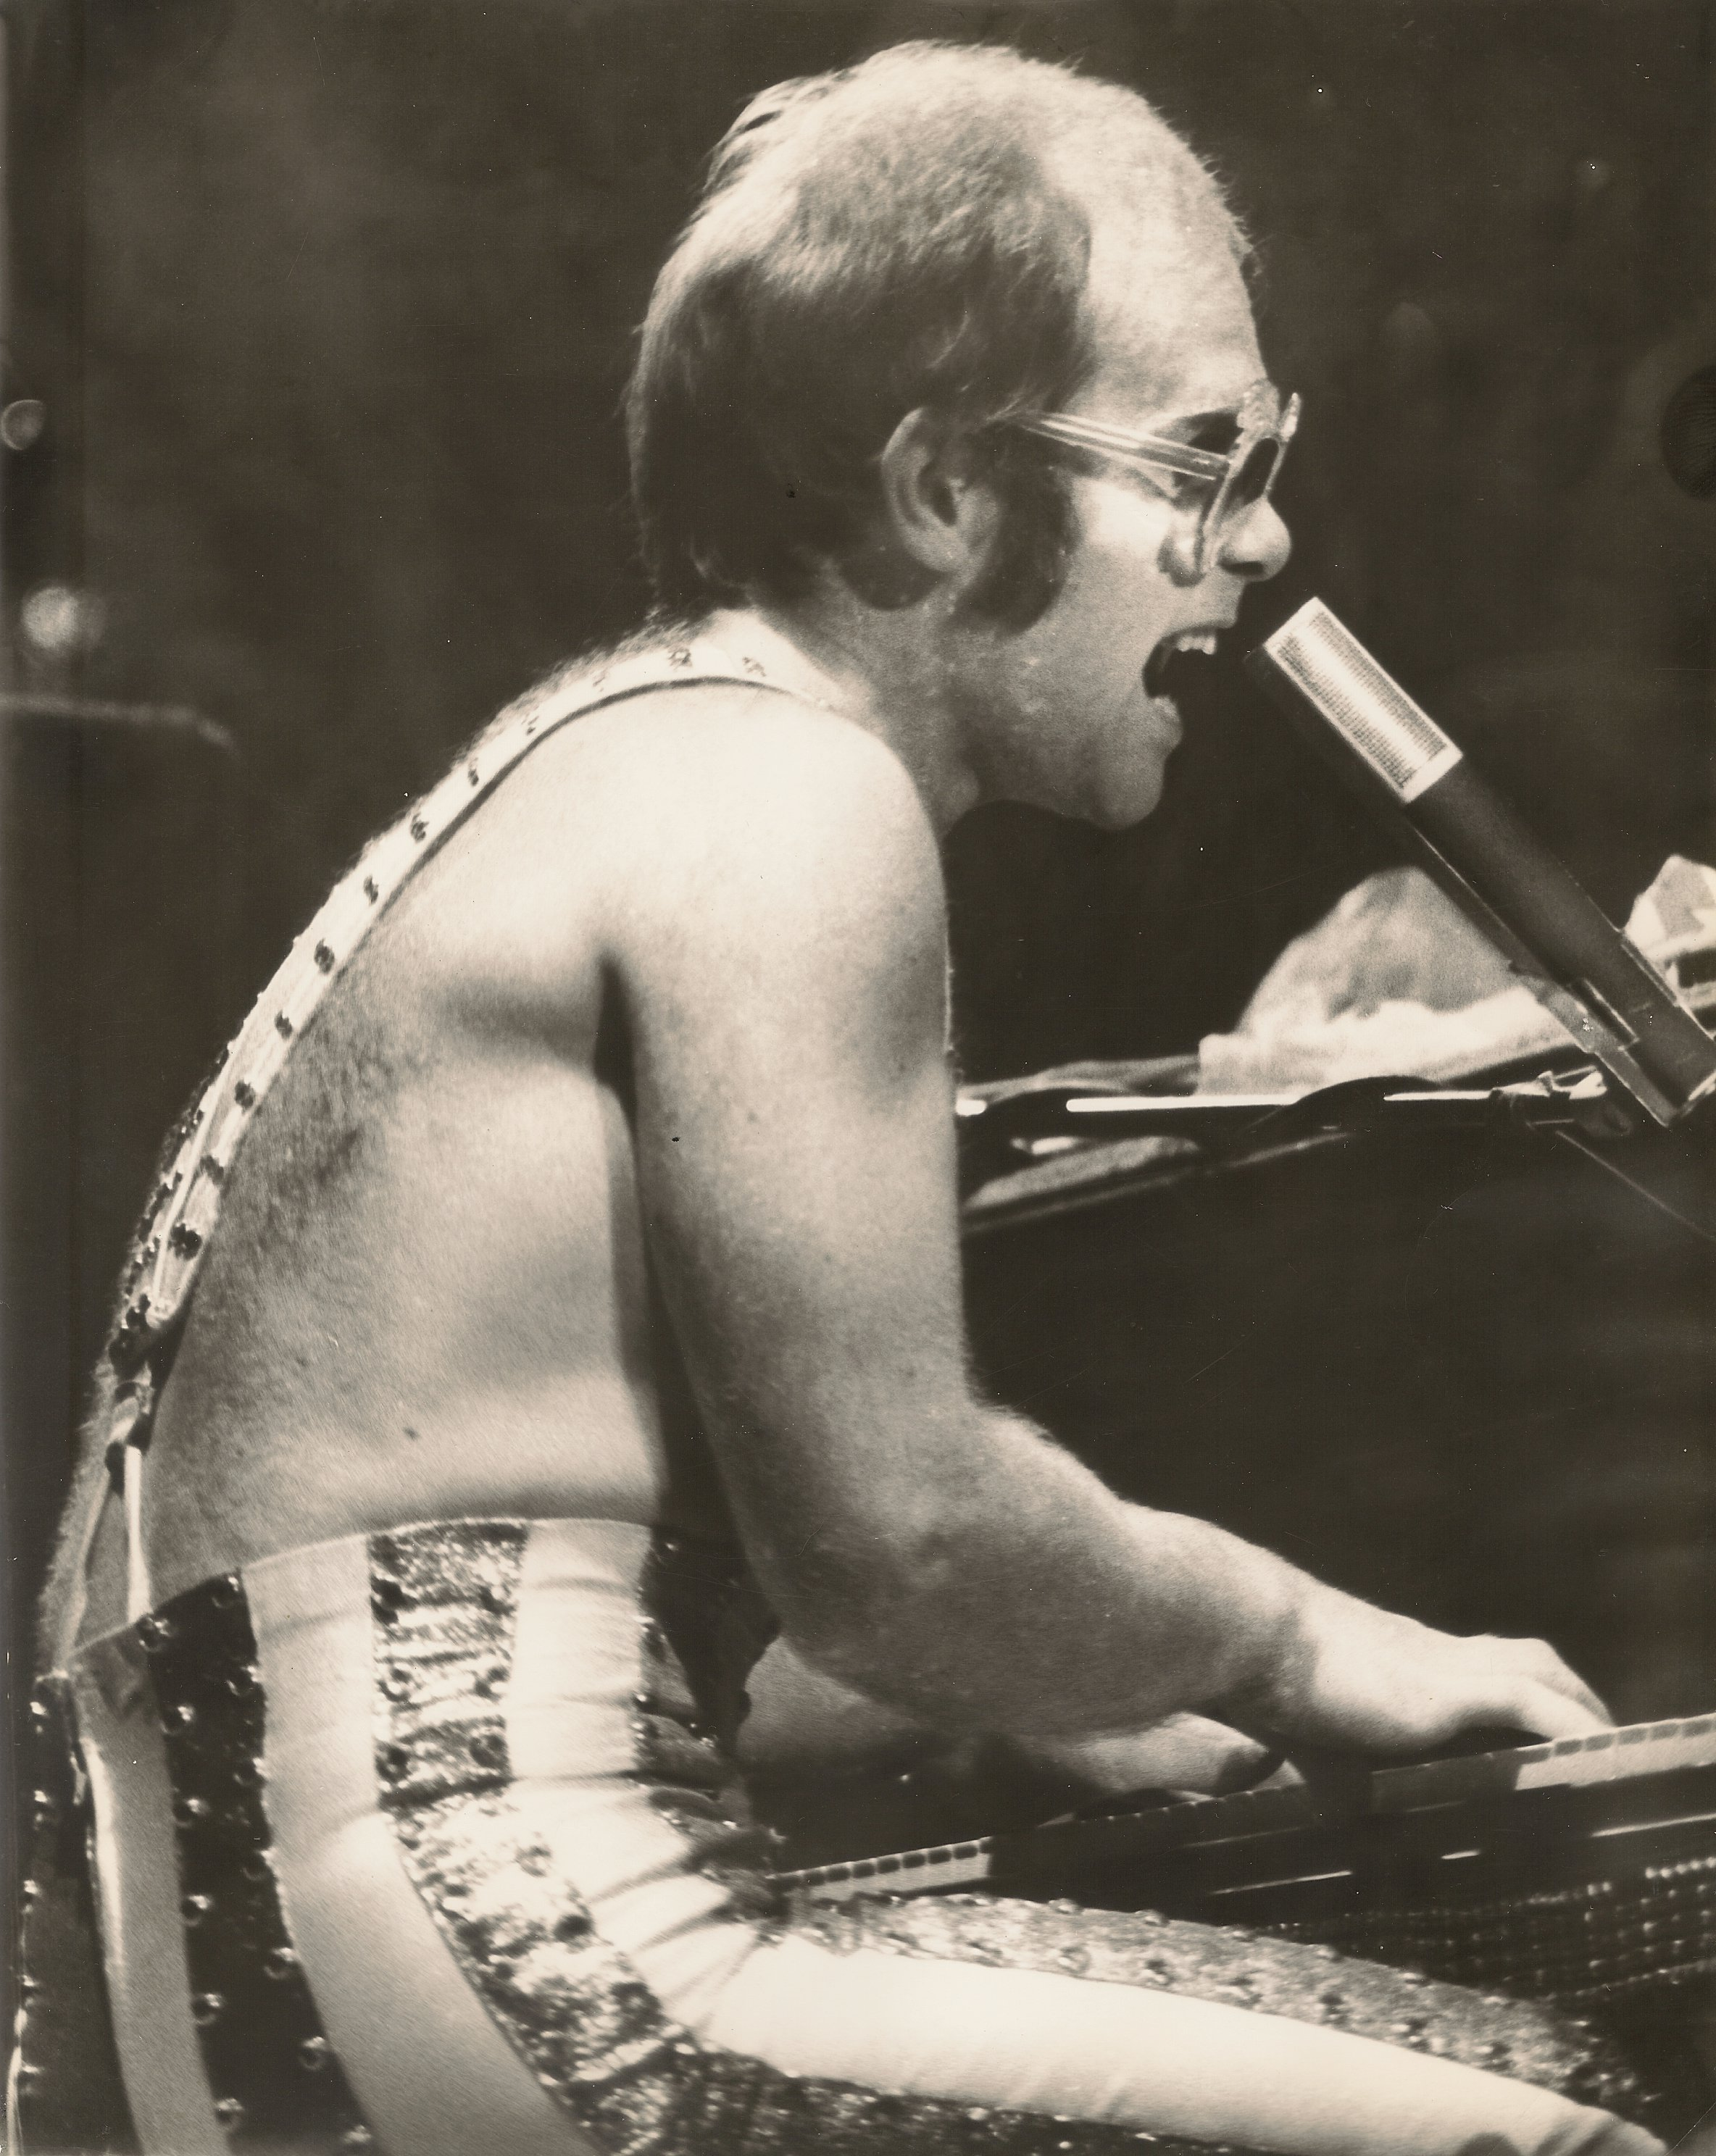 Forty Years Ago Elton John John Lennon Madison Square Garden New York Ny November 28 1974 Music City Mike